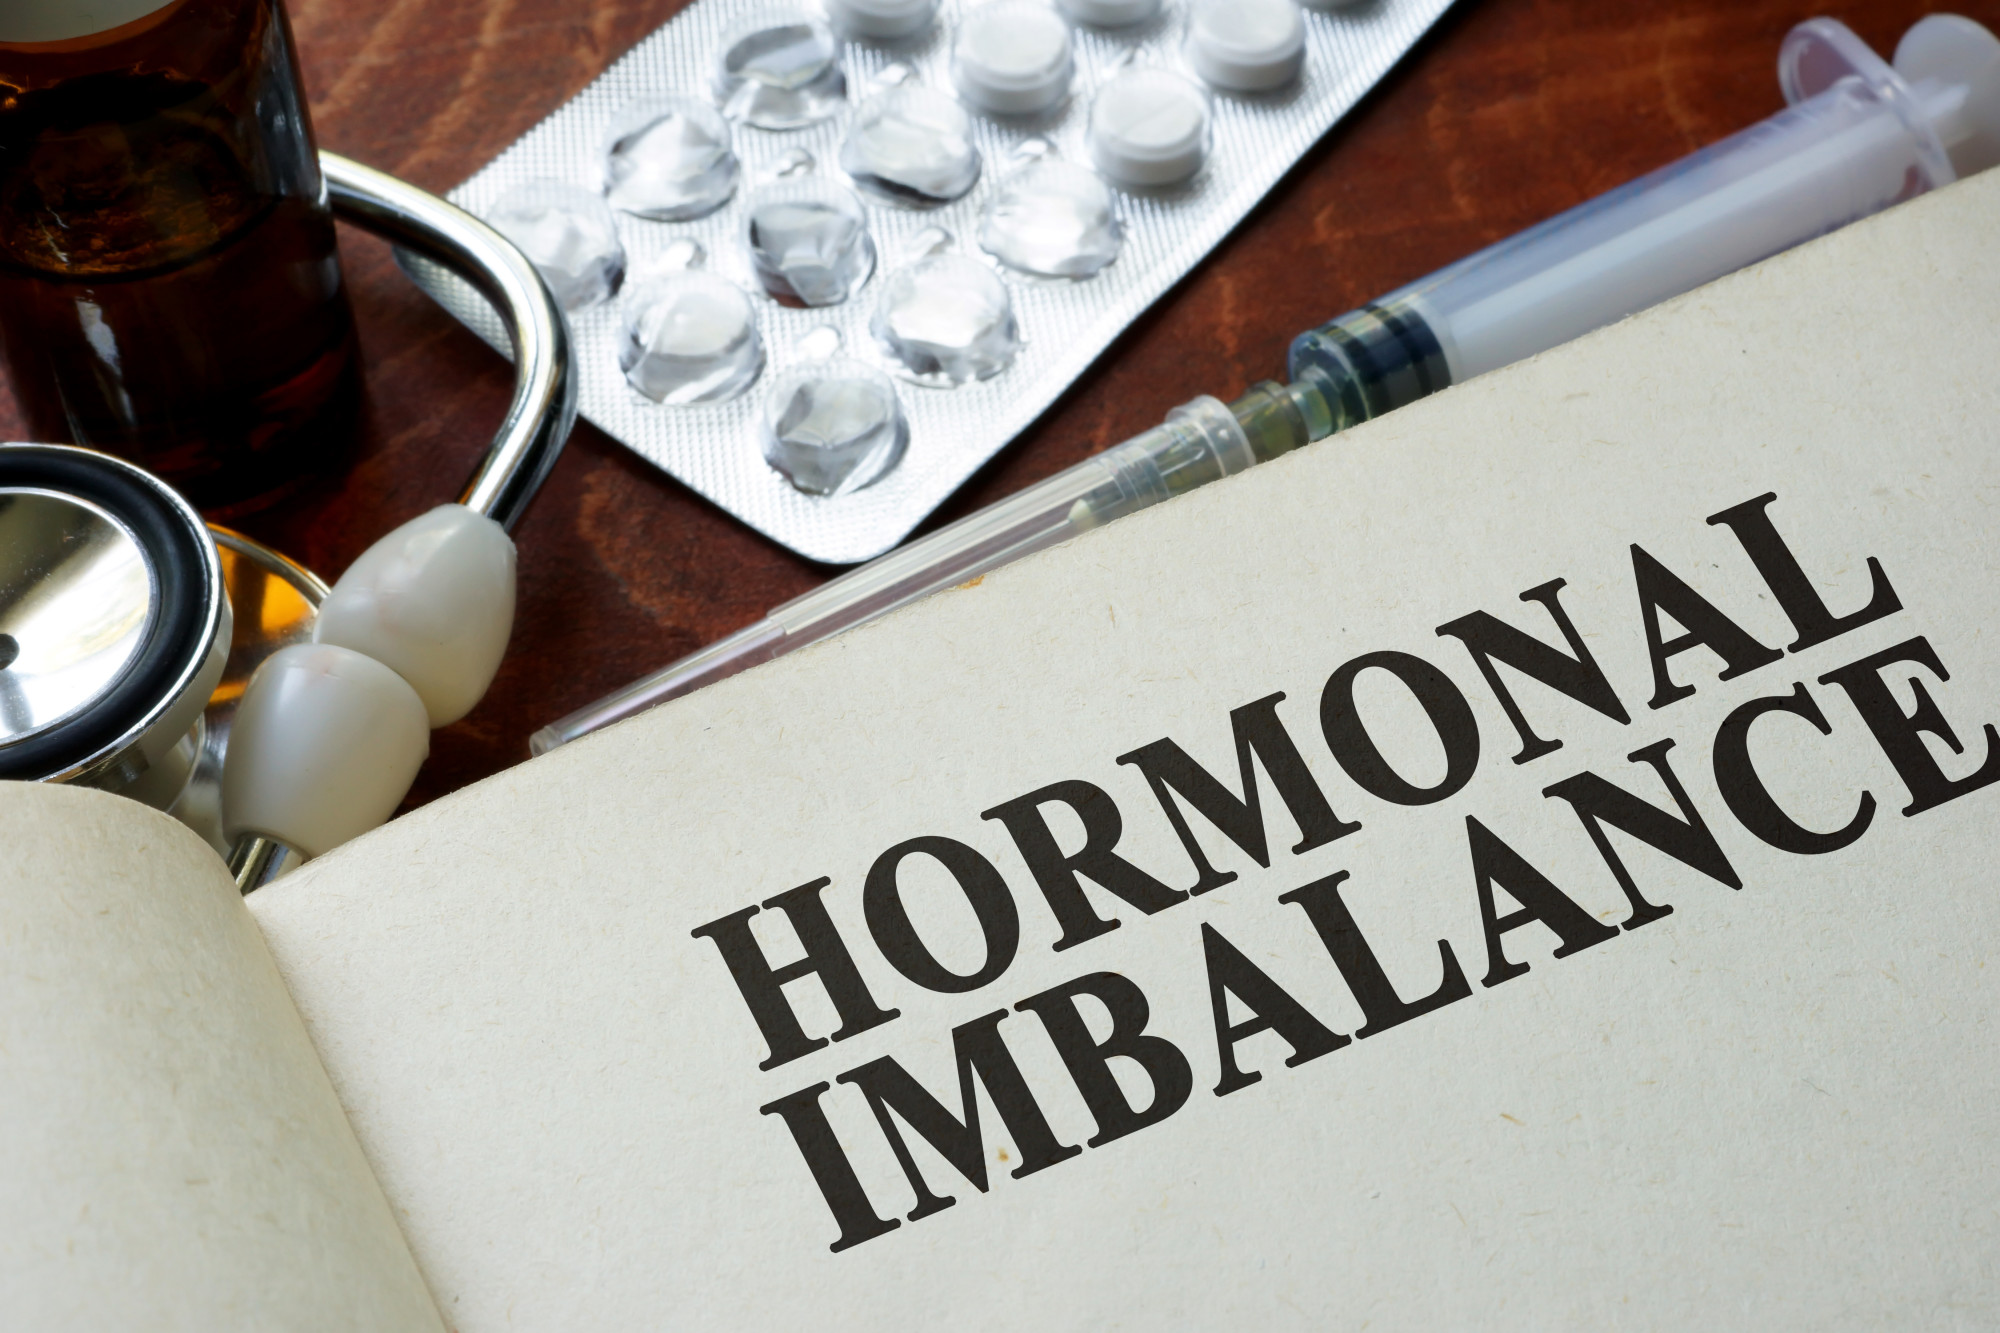 What Are the Symptoms of a Hormonal Imbalance?